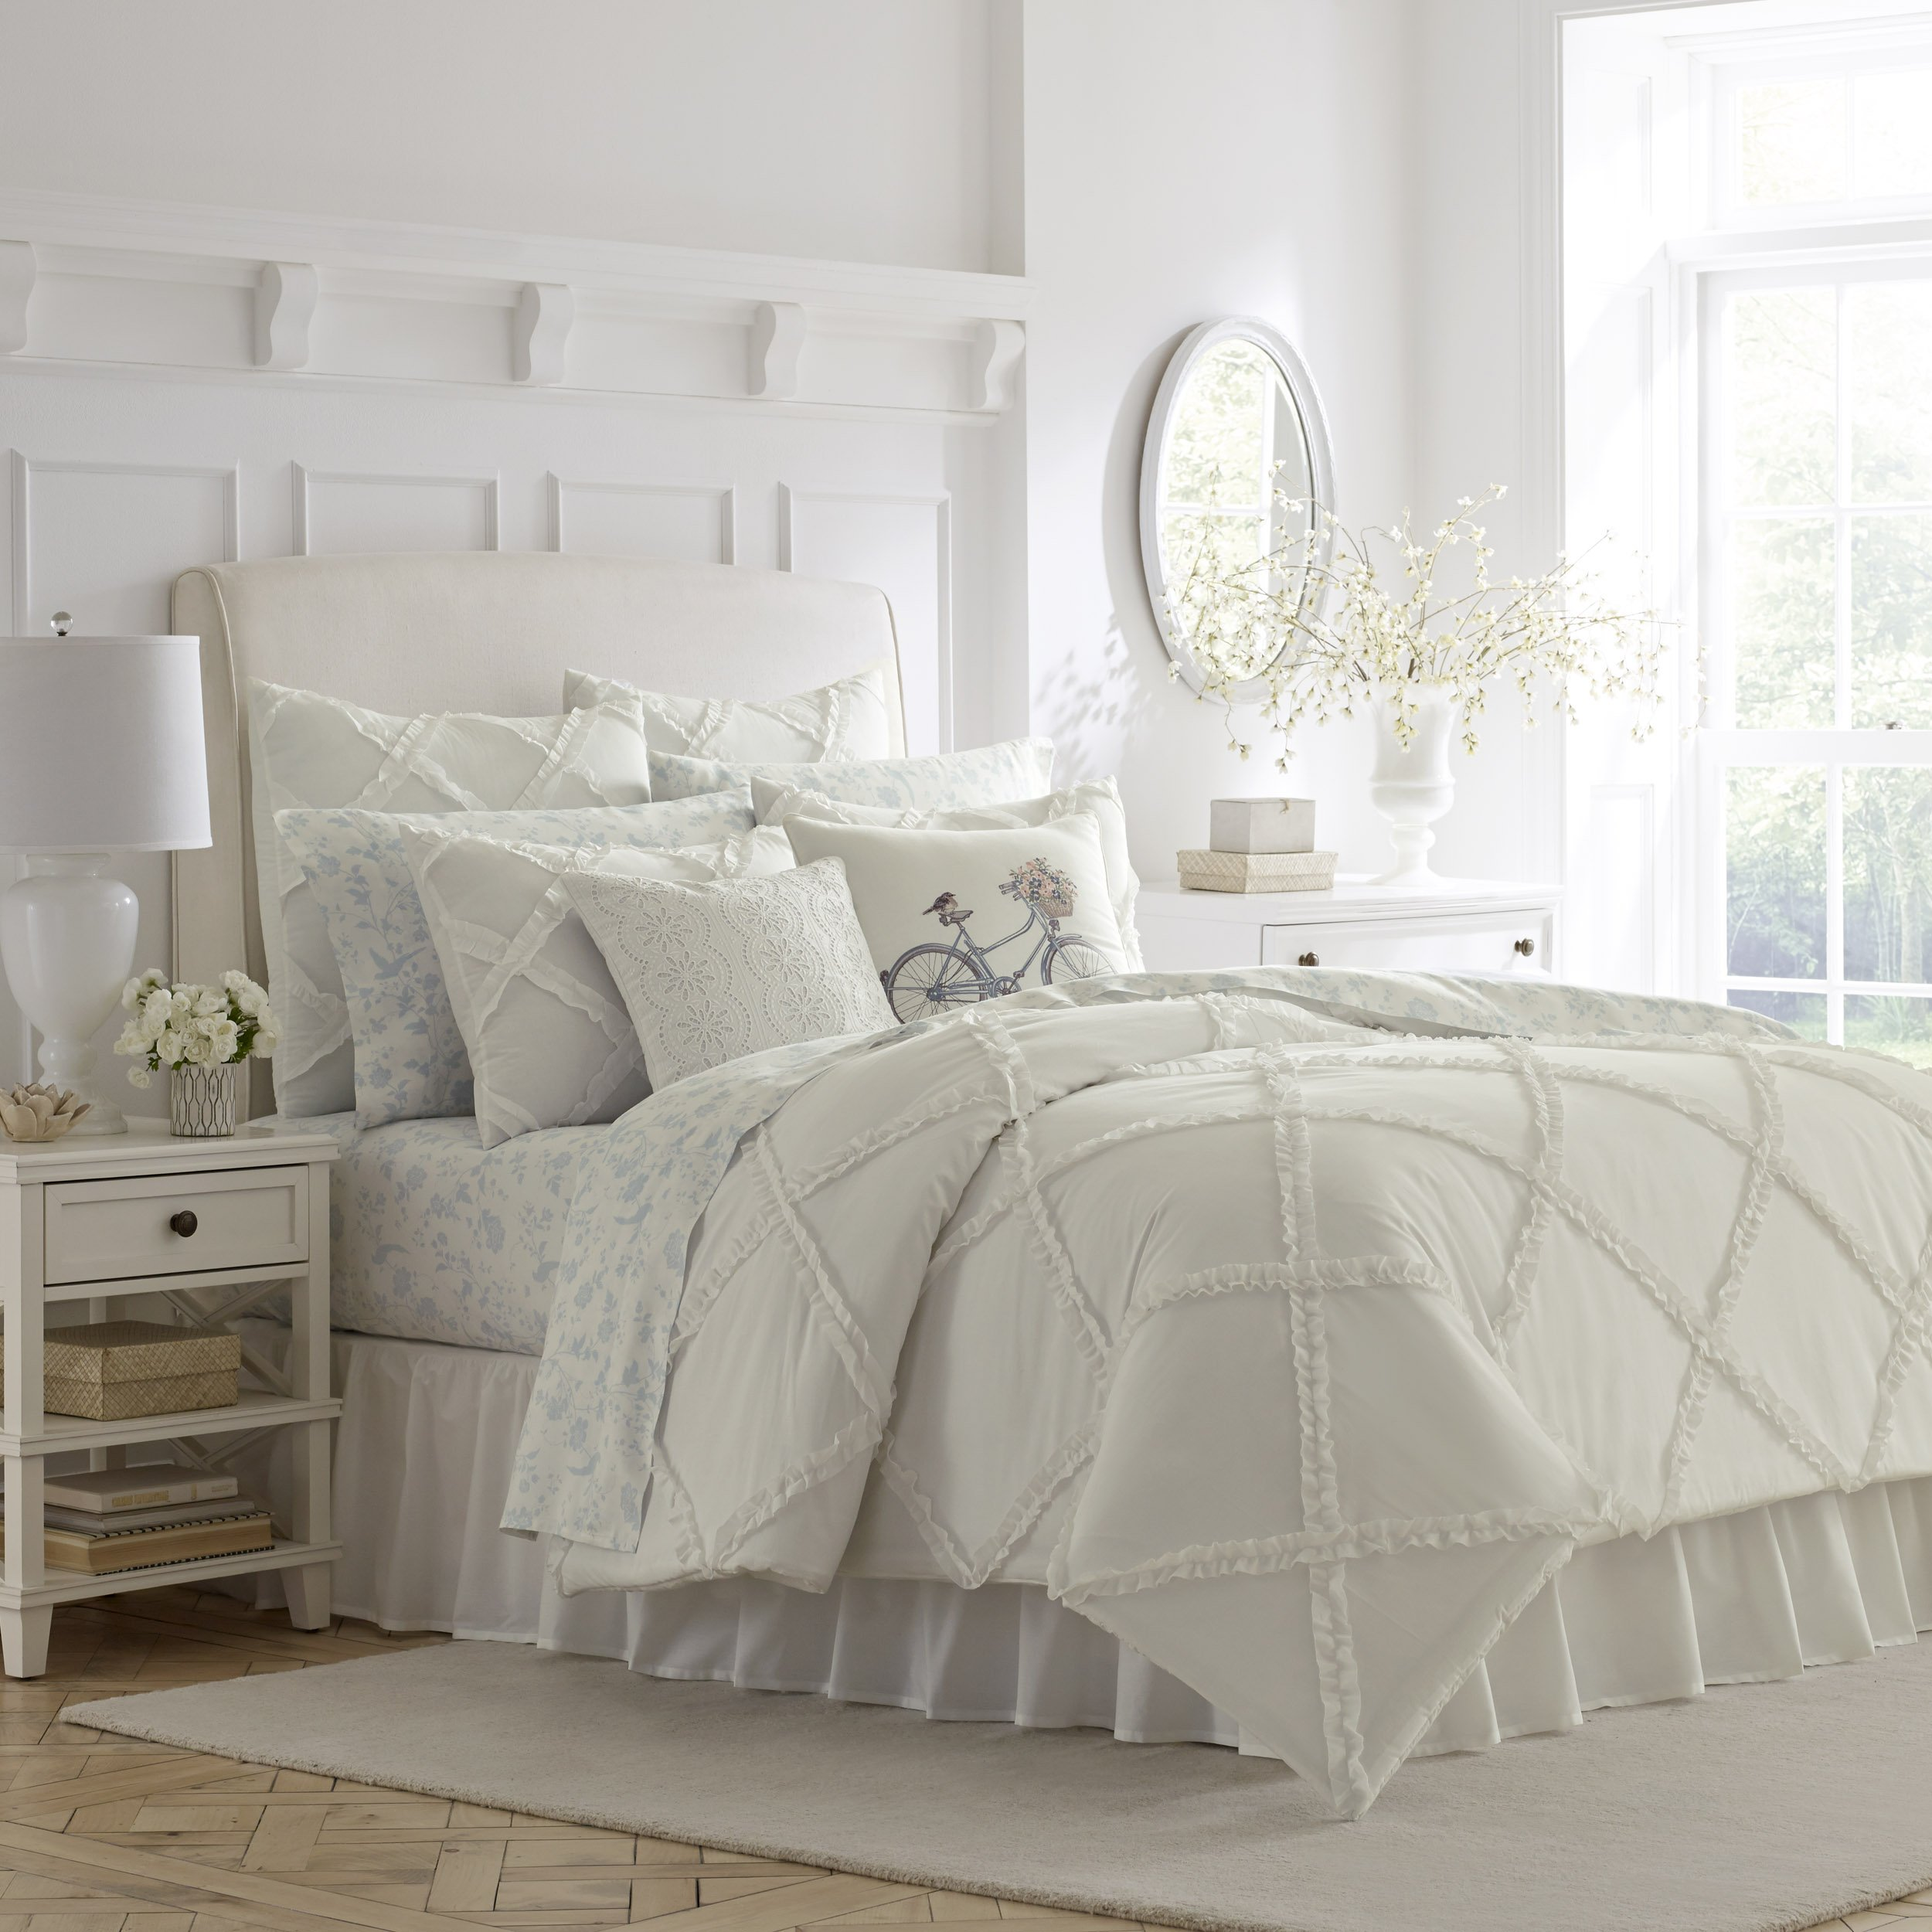 Laura Ashley Adelina White Ruffle Duvet Cover Set, Full/Queen